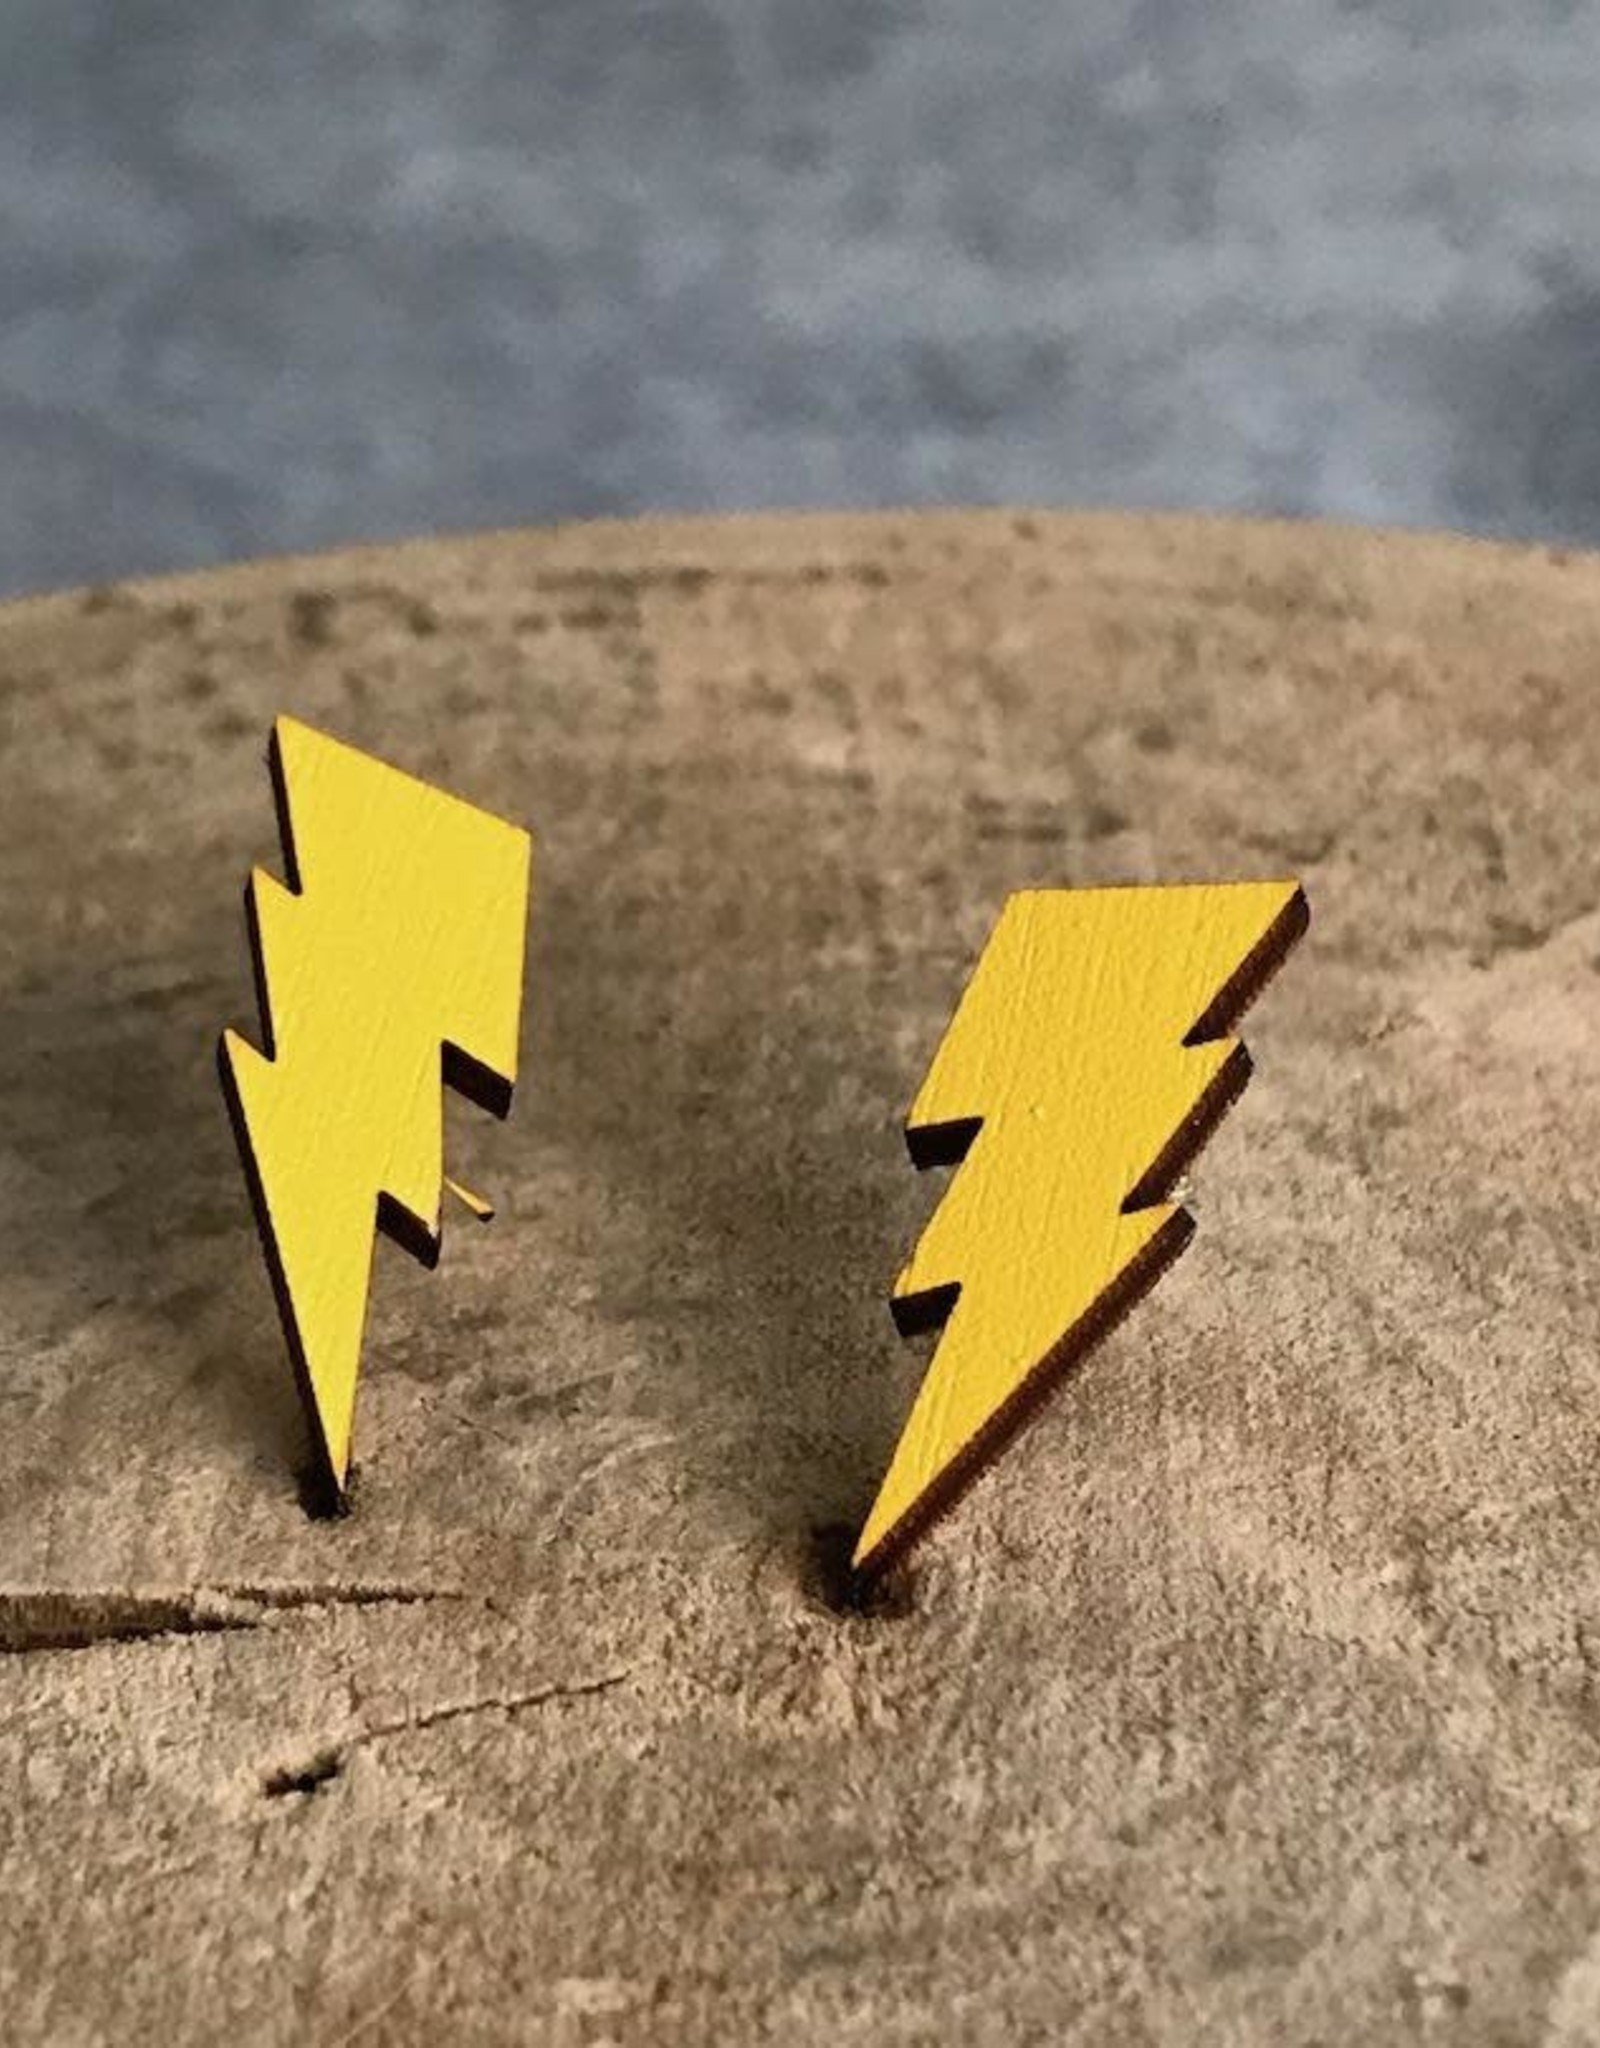 Handmade Lightning Bolts Yellow Lasercut Wood Earrings On Sterling Silver Posts Silver In The City